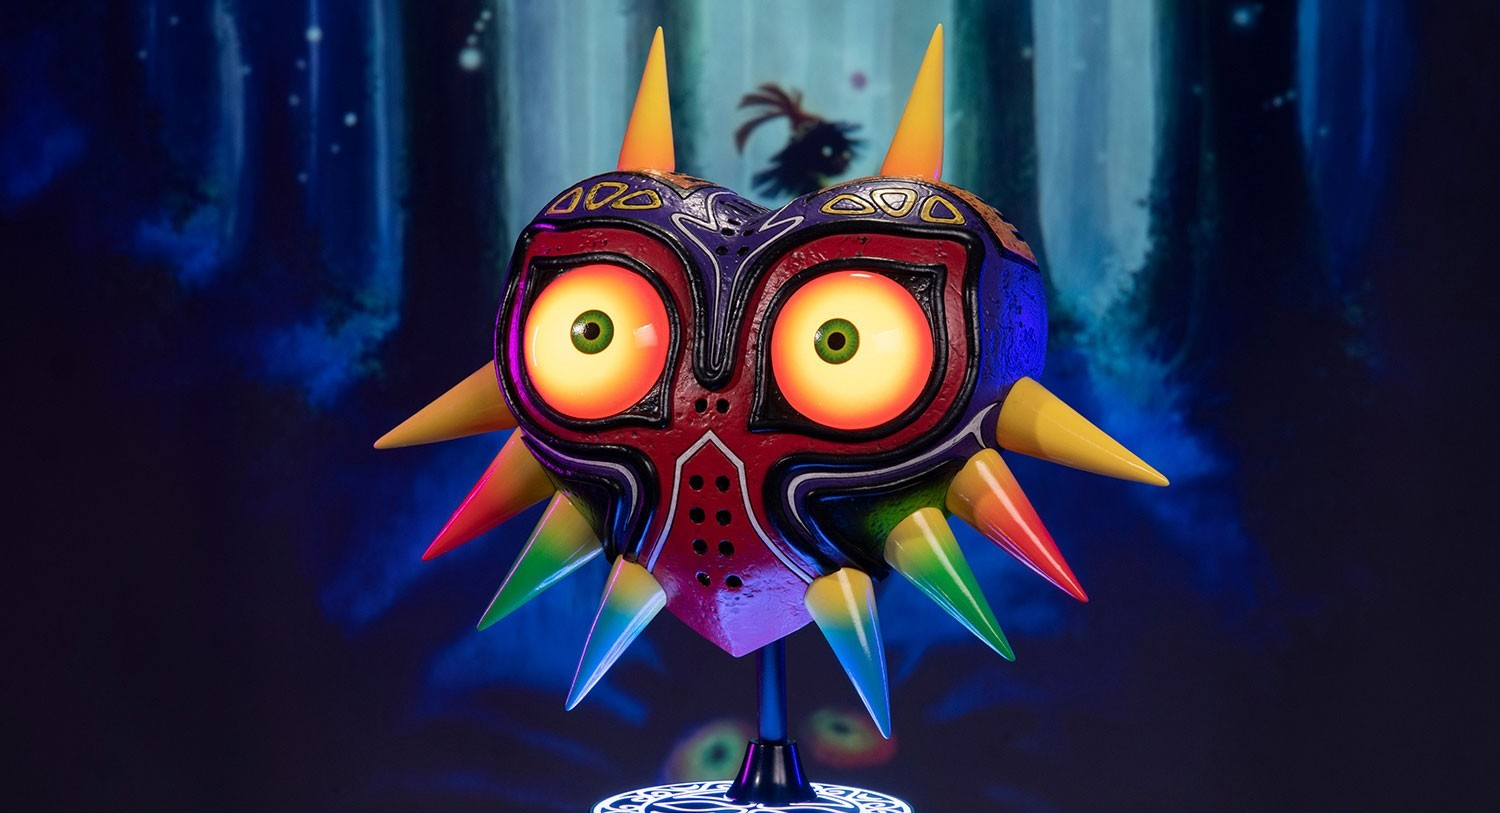 A Zelda: Majora's Mask replica is for sale, but you can't wear it